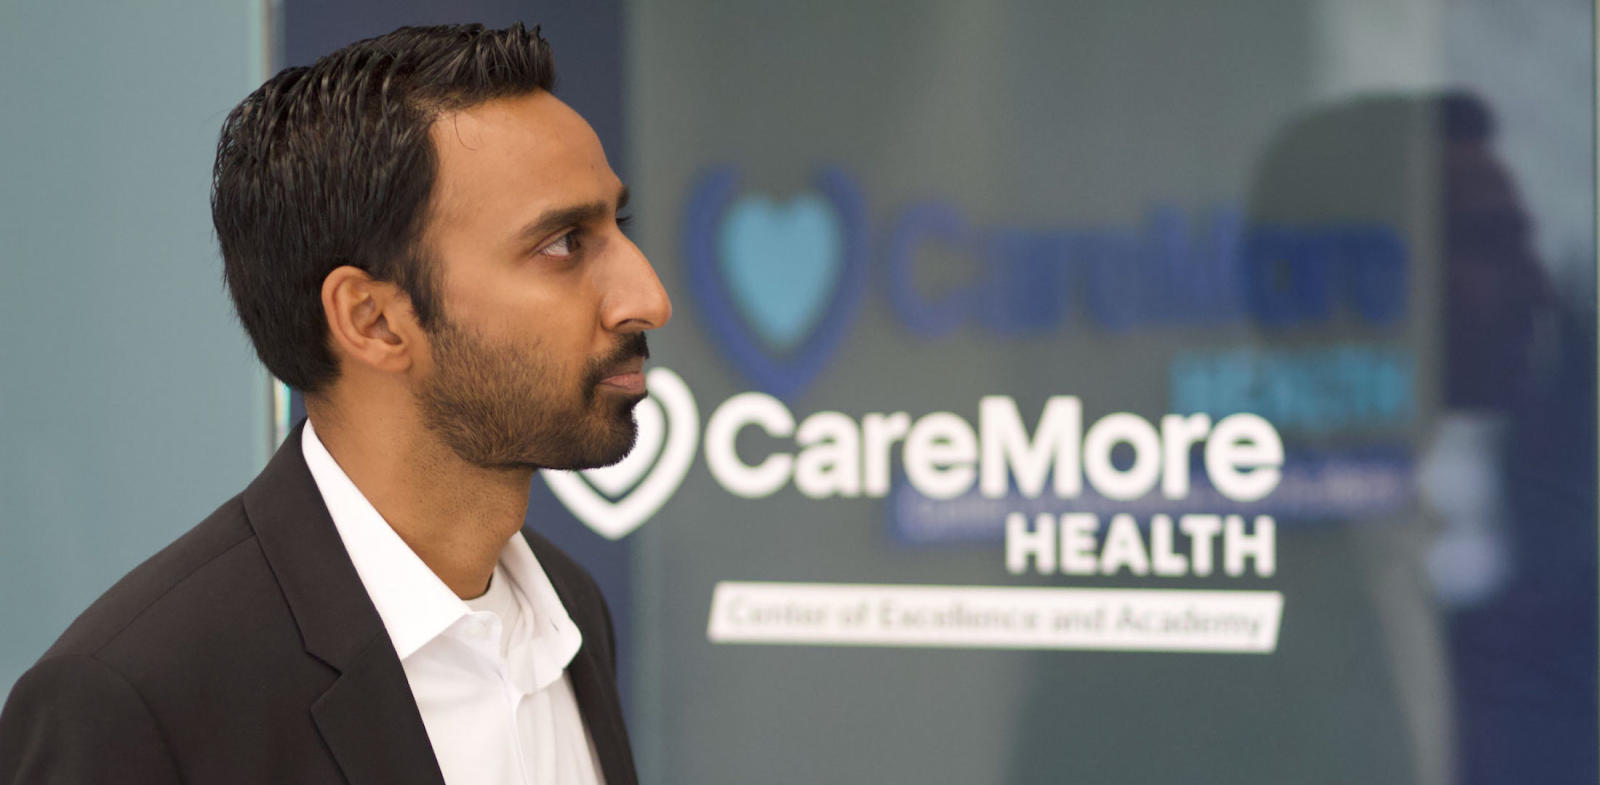 caremore health, Dr. Vivek Garg, CareMore's Chief Medical Officer